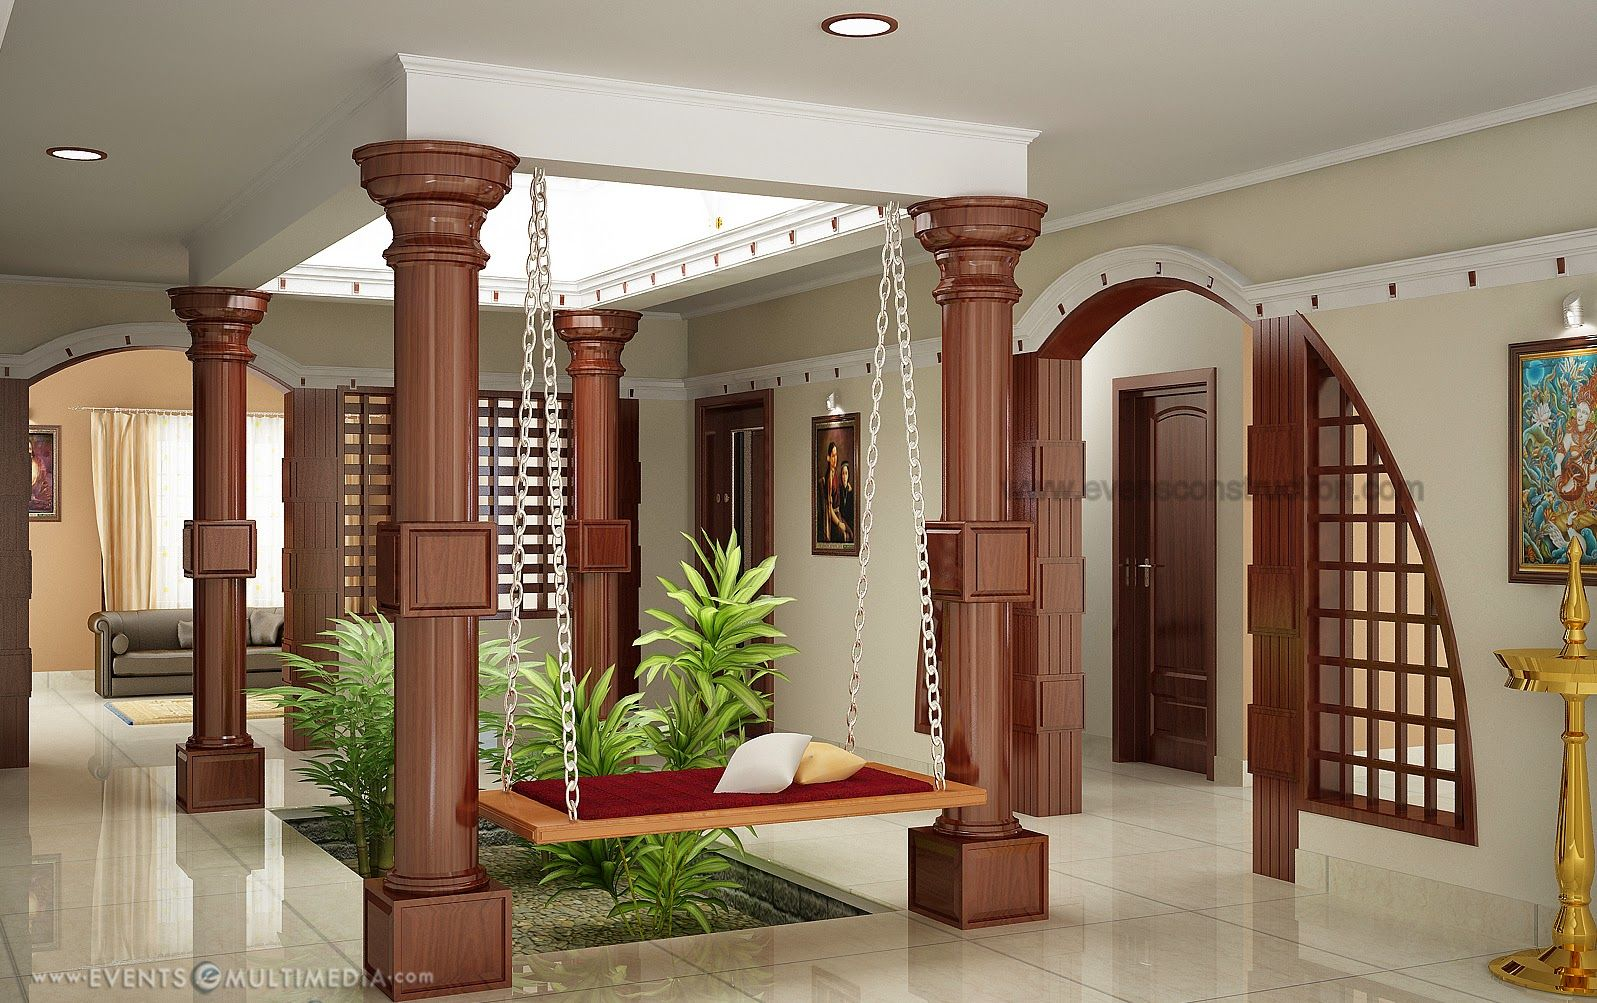 Interior design kerala google search inside and Old home renovation in kerala